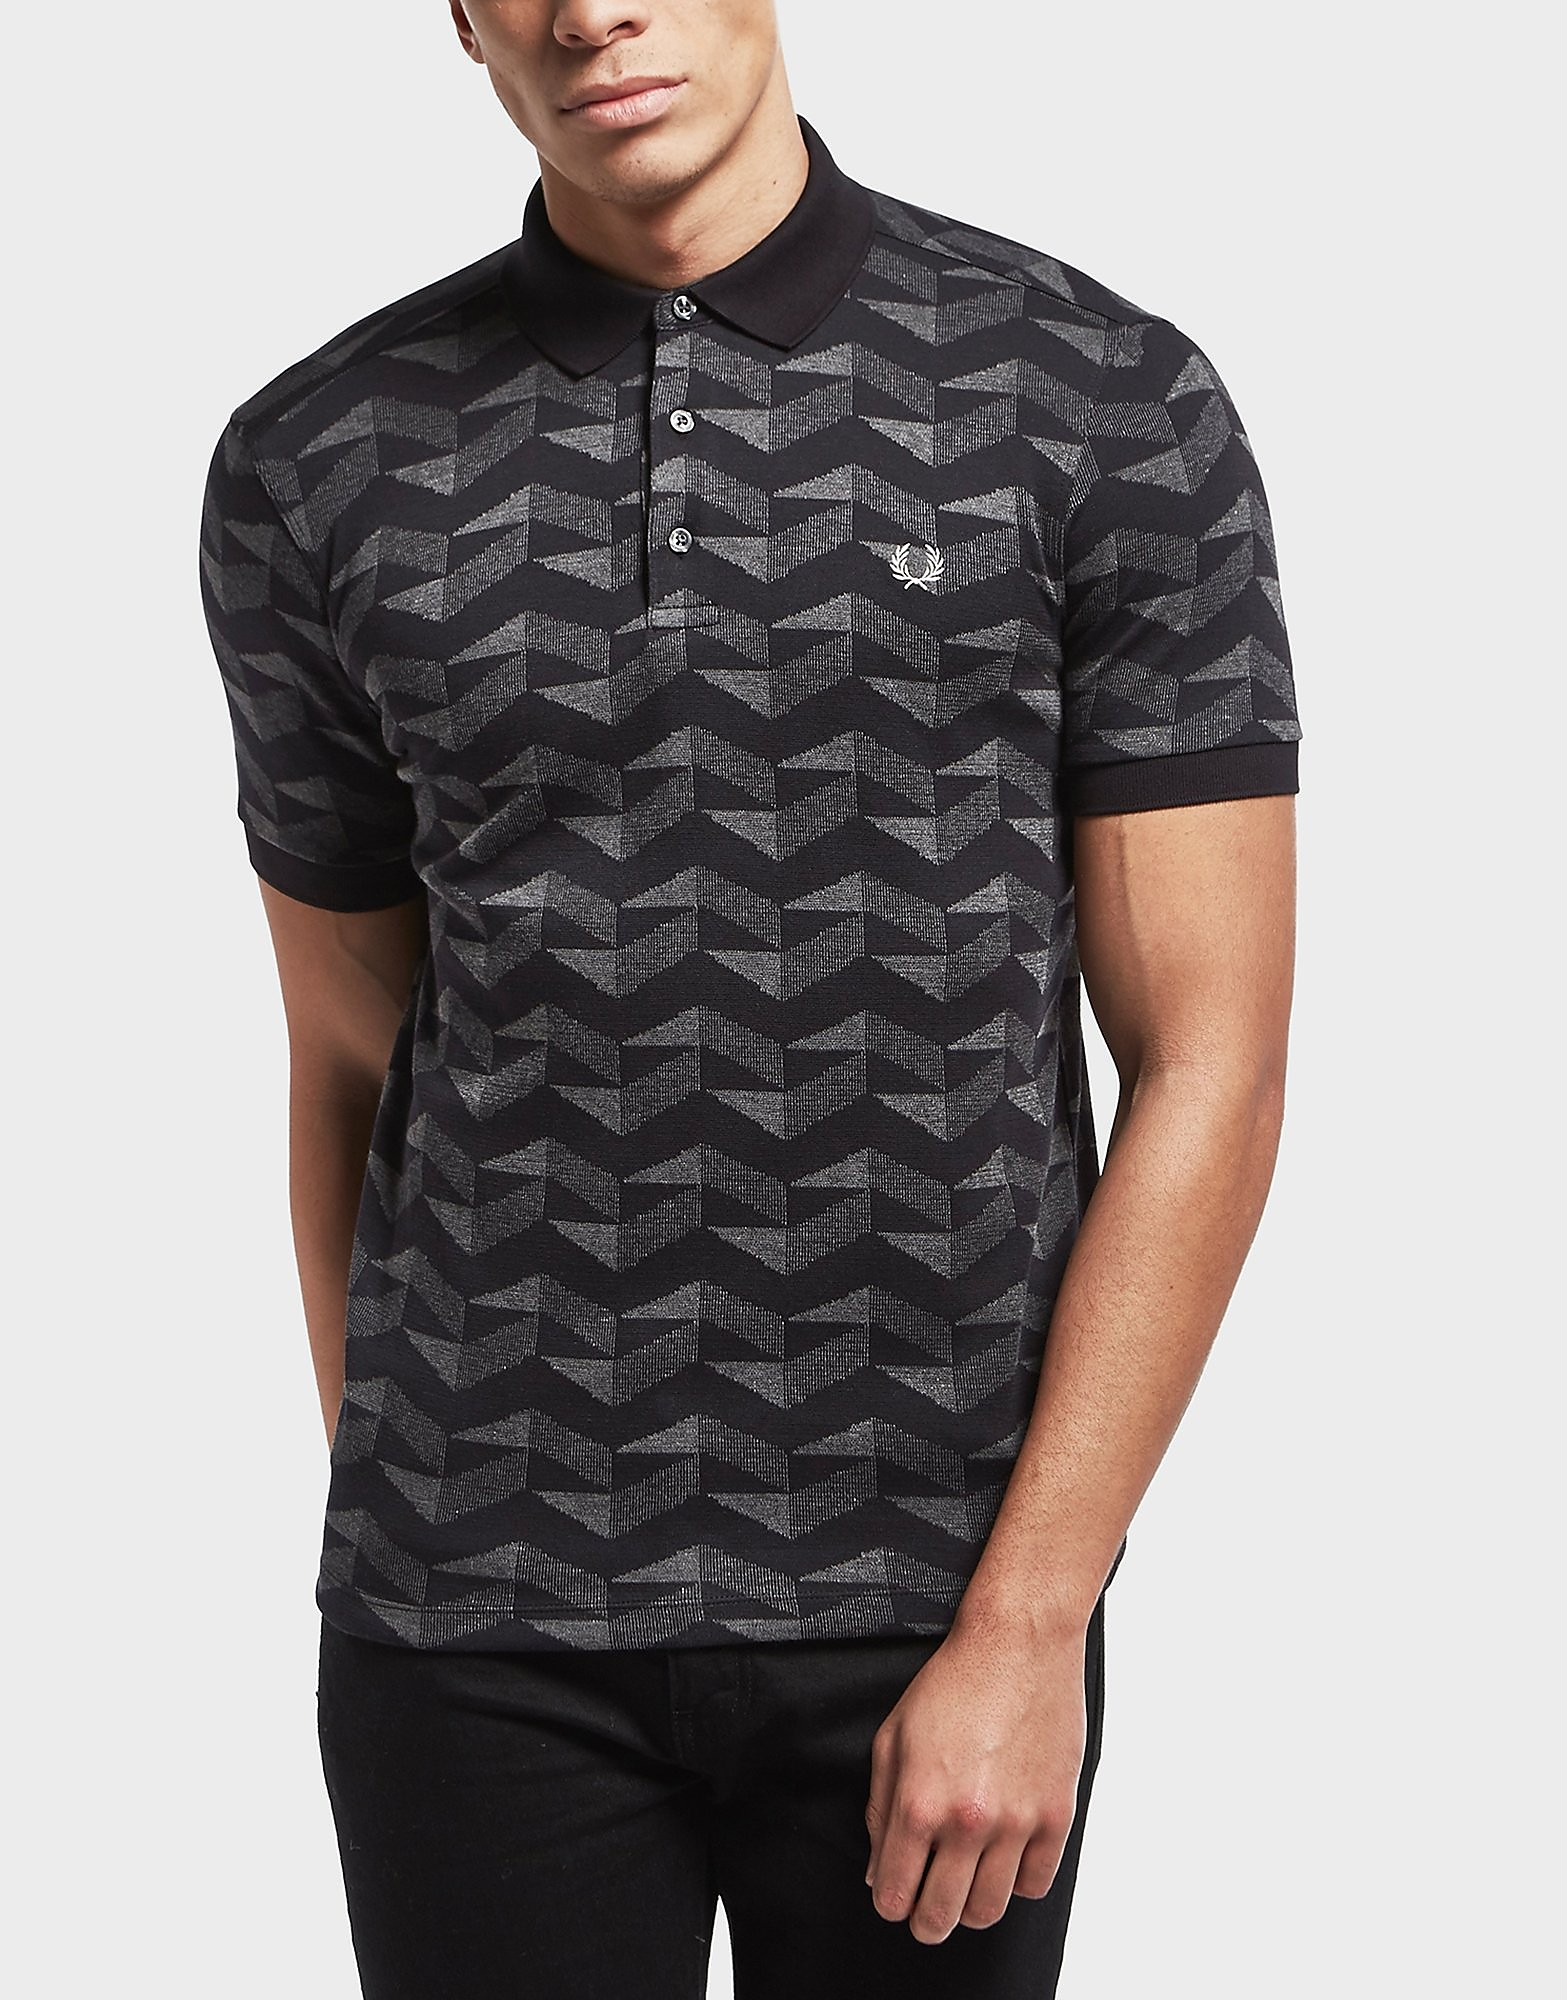 Fred Perry Jacquard Pique Short Sleeve Polo Shirt